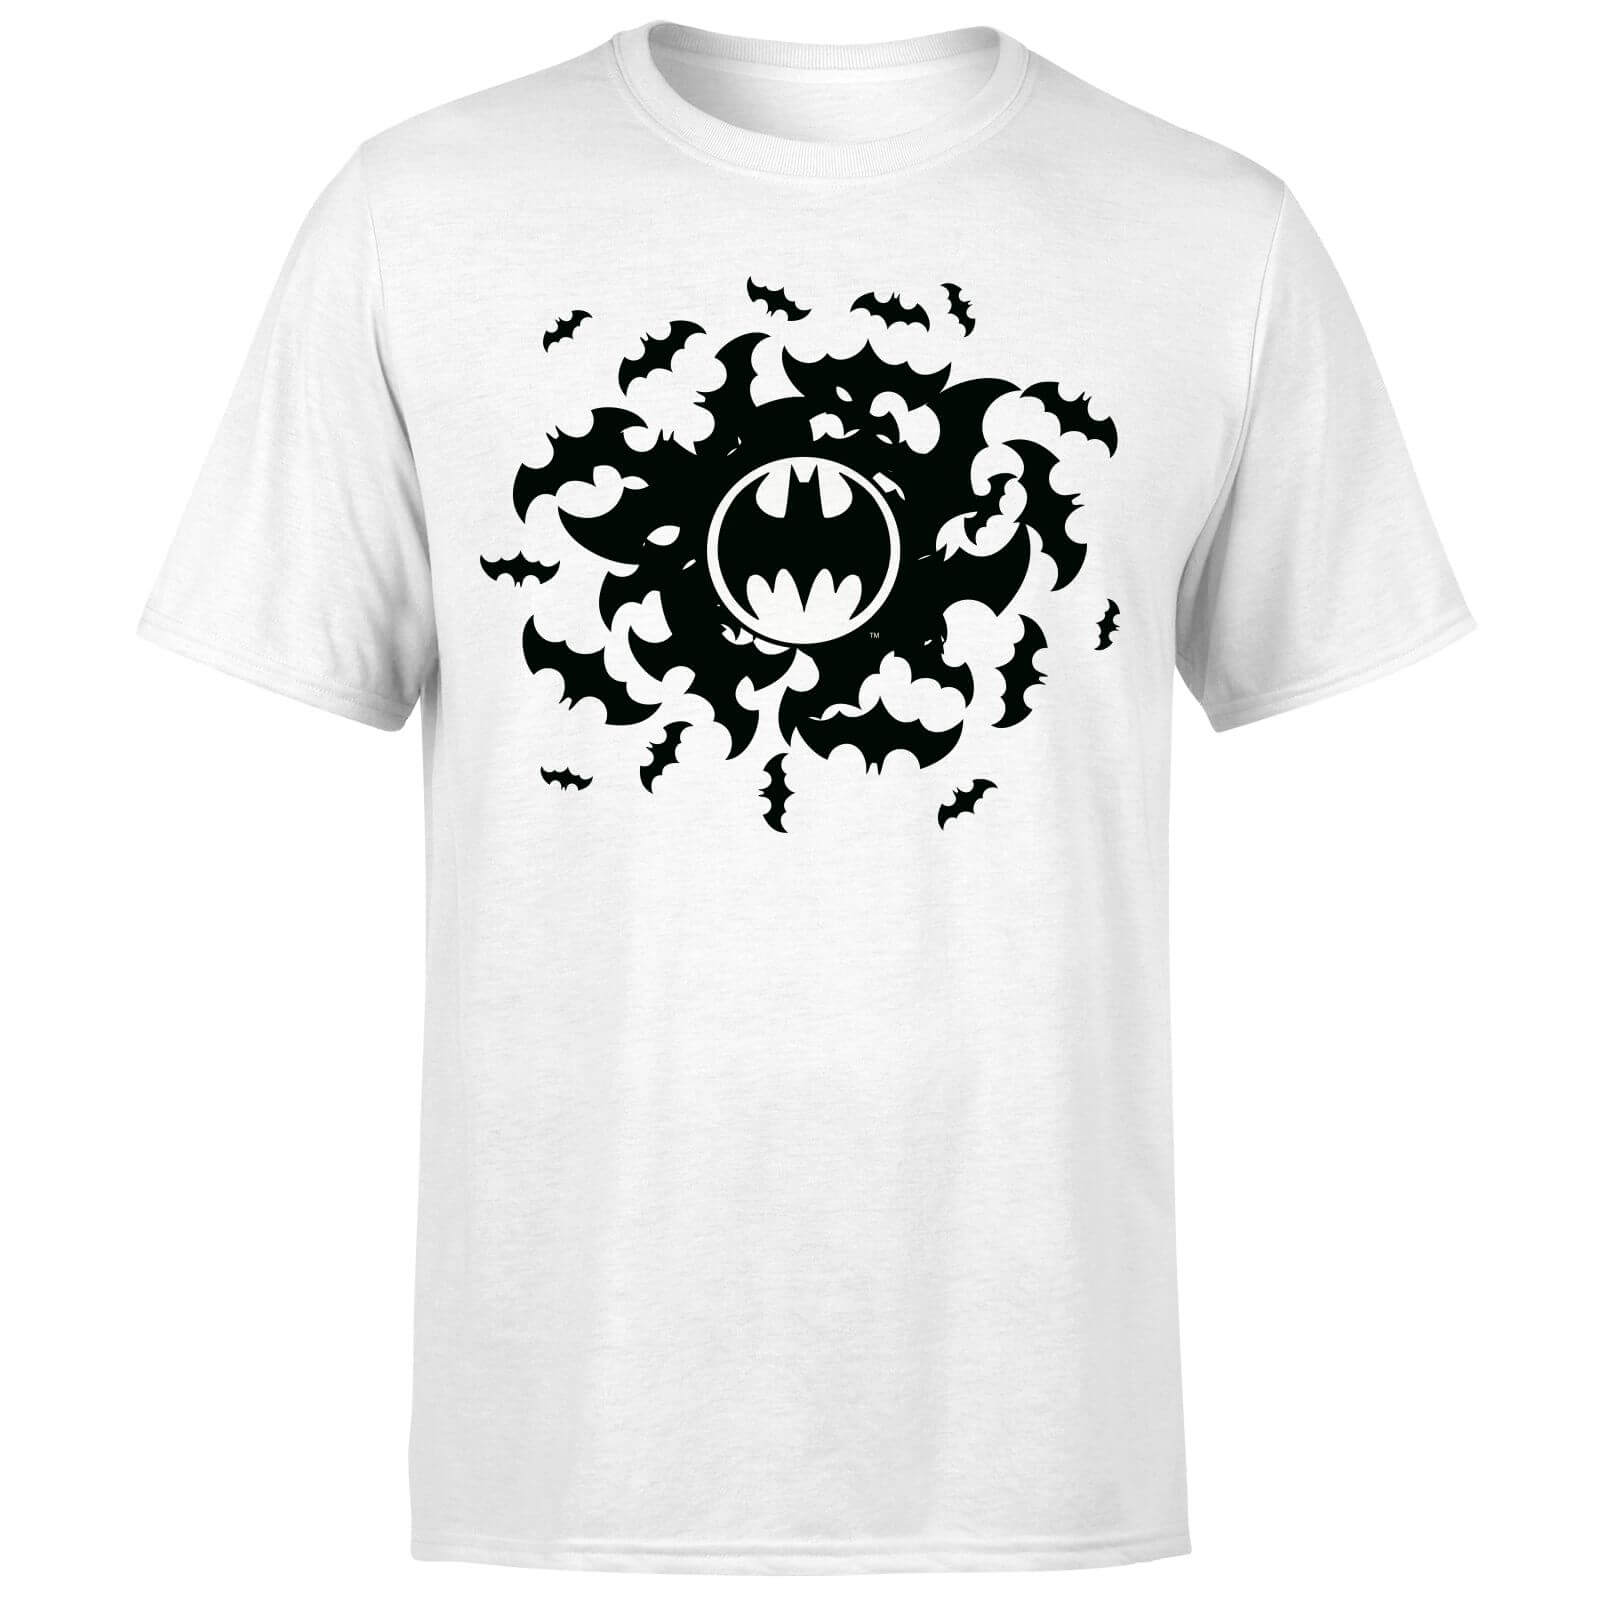 DC Comics Batman Bat Swirl T-Shirt - White